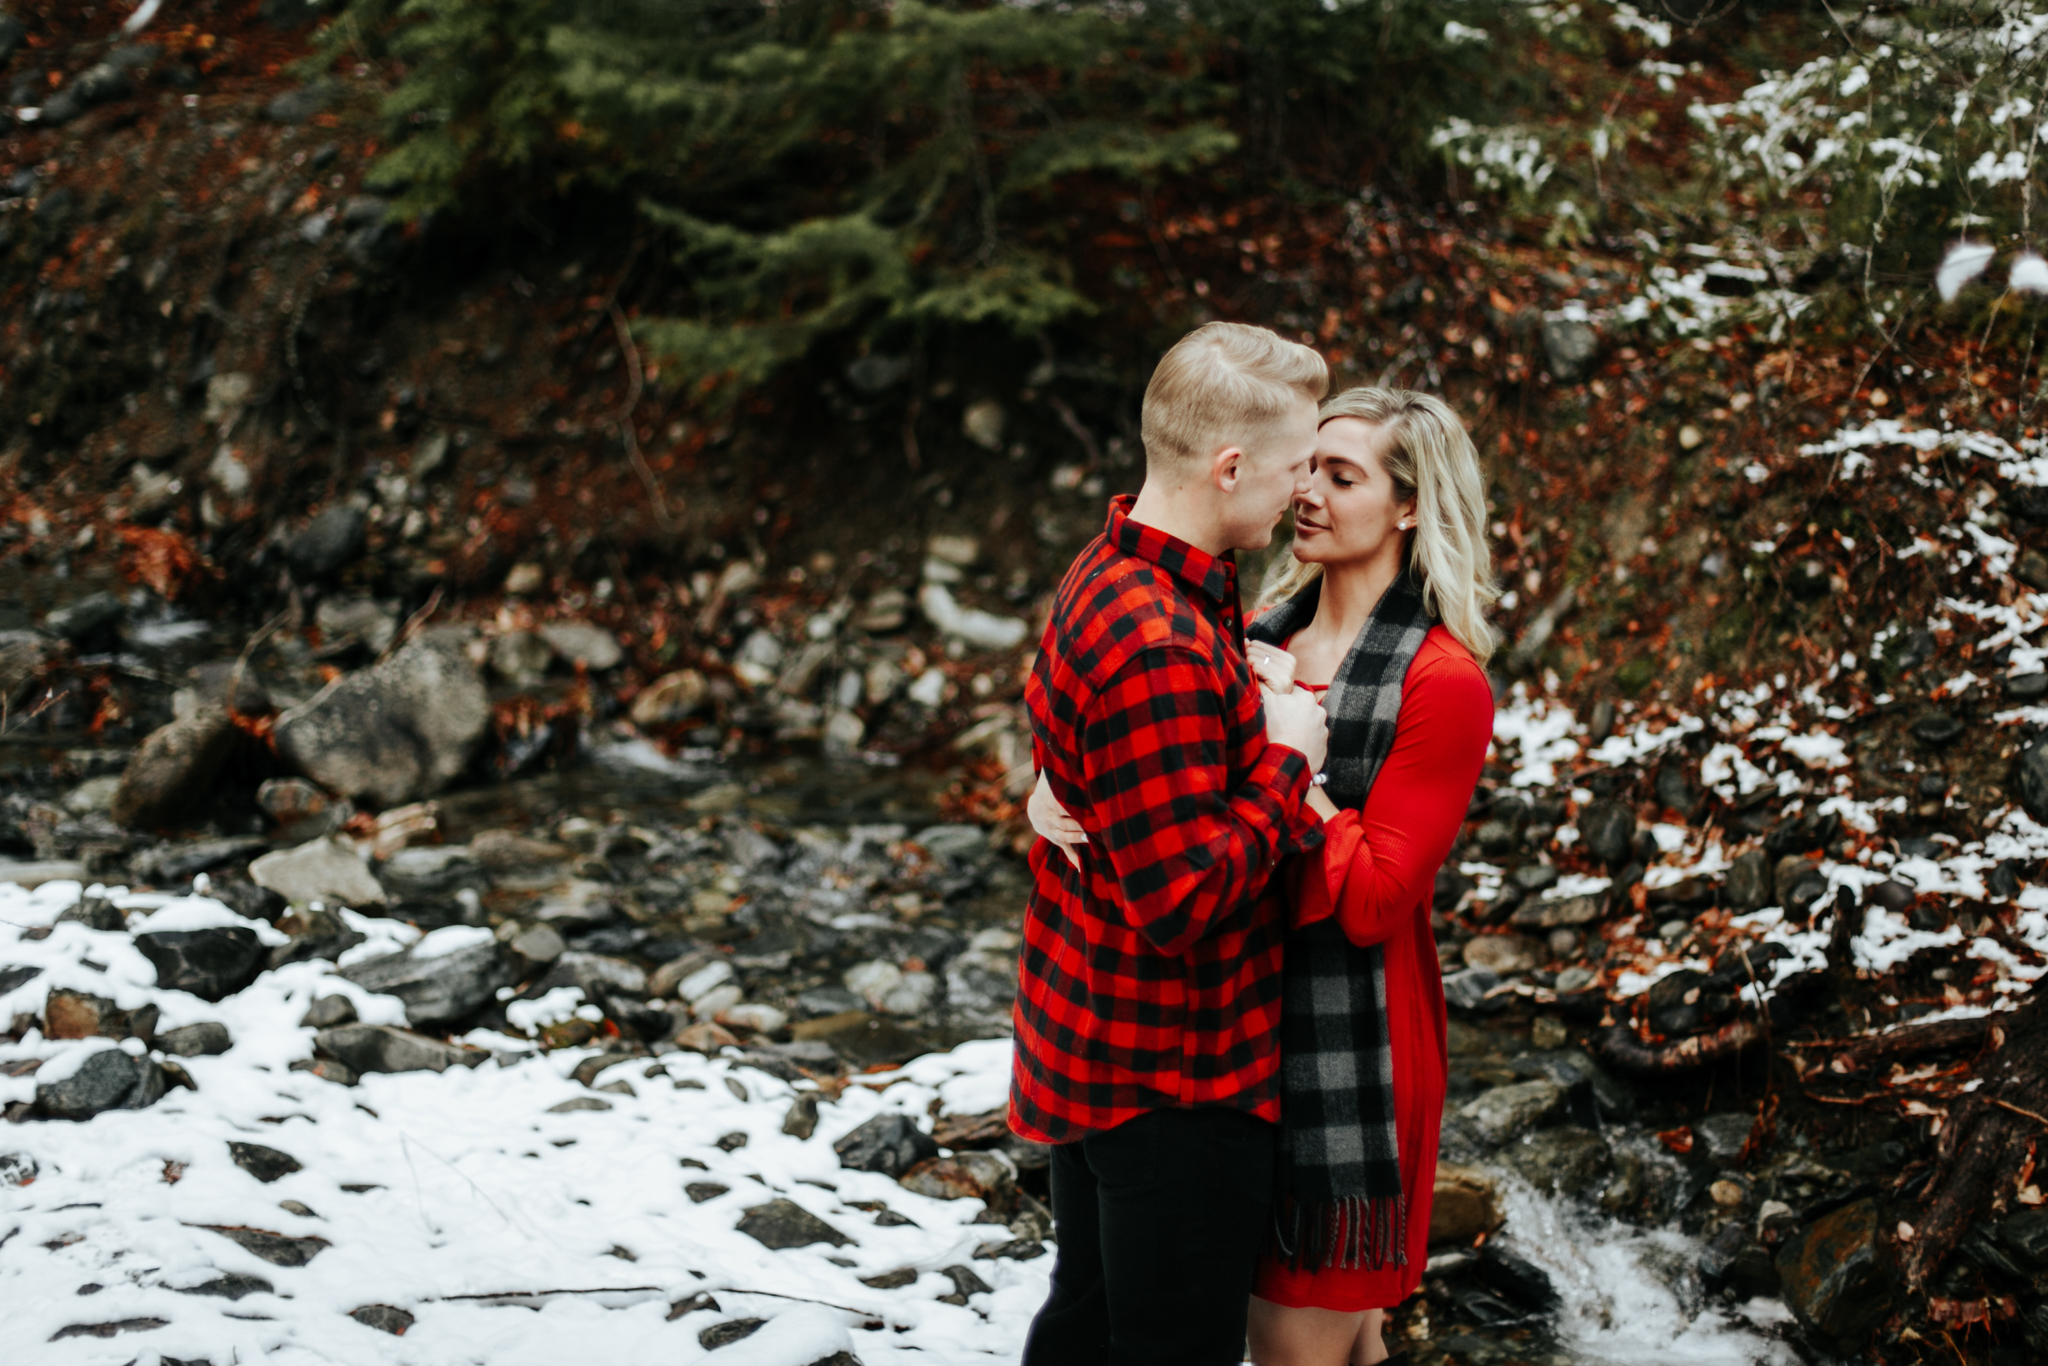 love-and-be-loved-photography-mountain-engagement-ashlyn-rob-perfect-fit-4-u-photo-image-picture-42.jpg